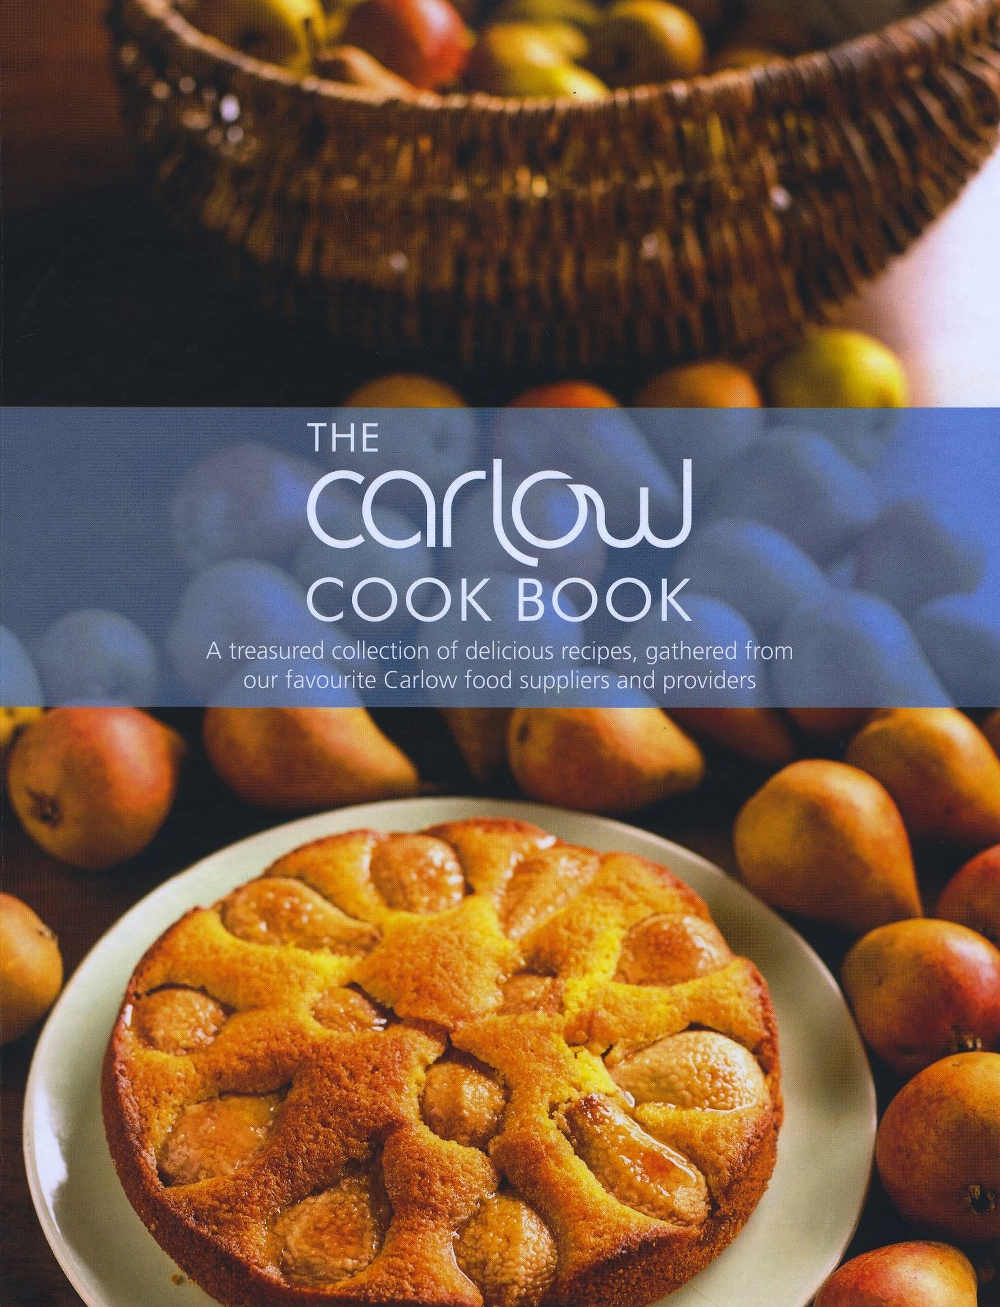 The Carlow Cook Book (hardback, €12.50)